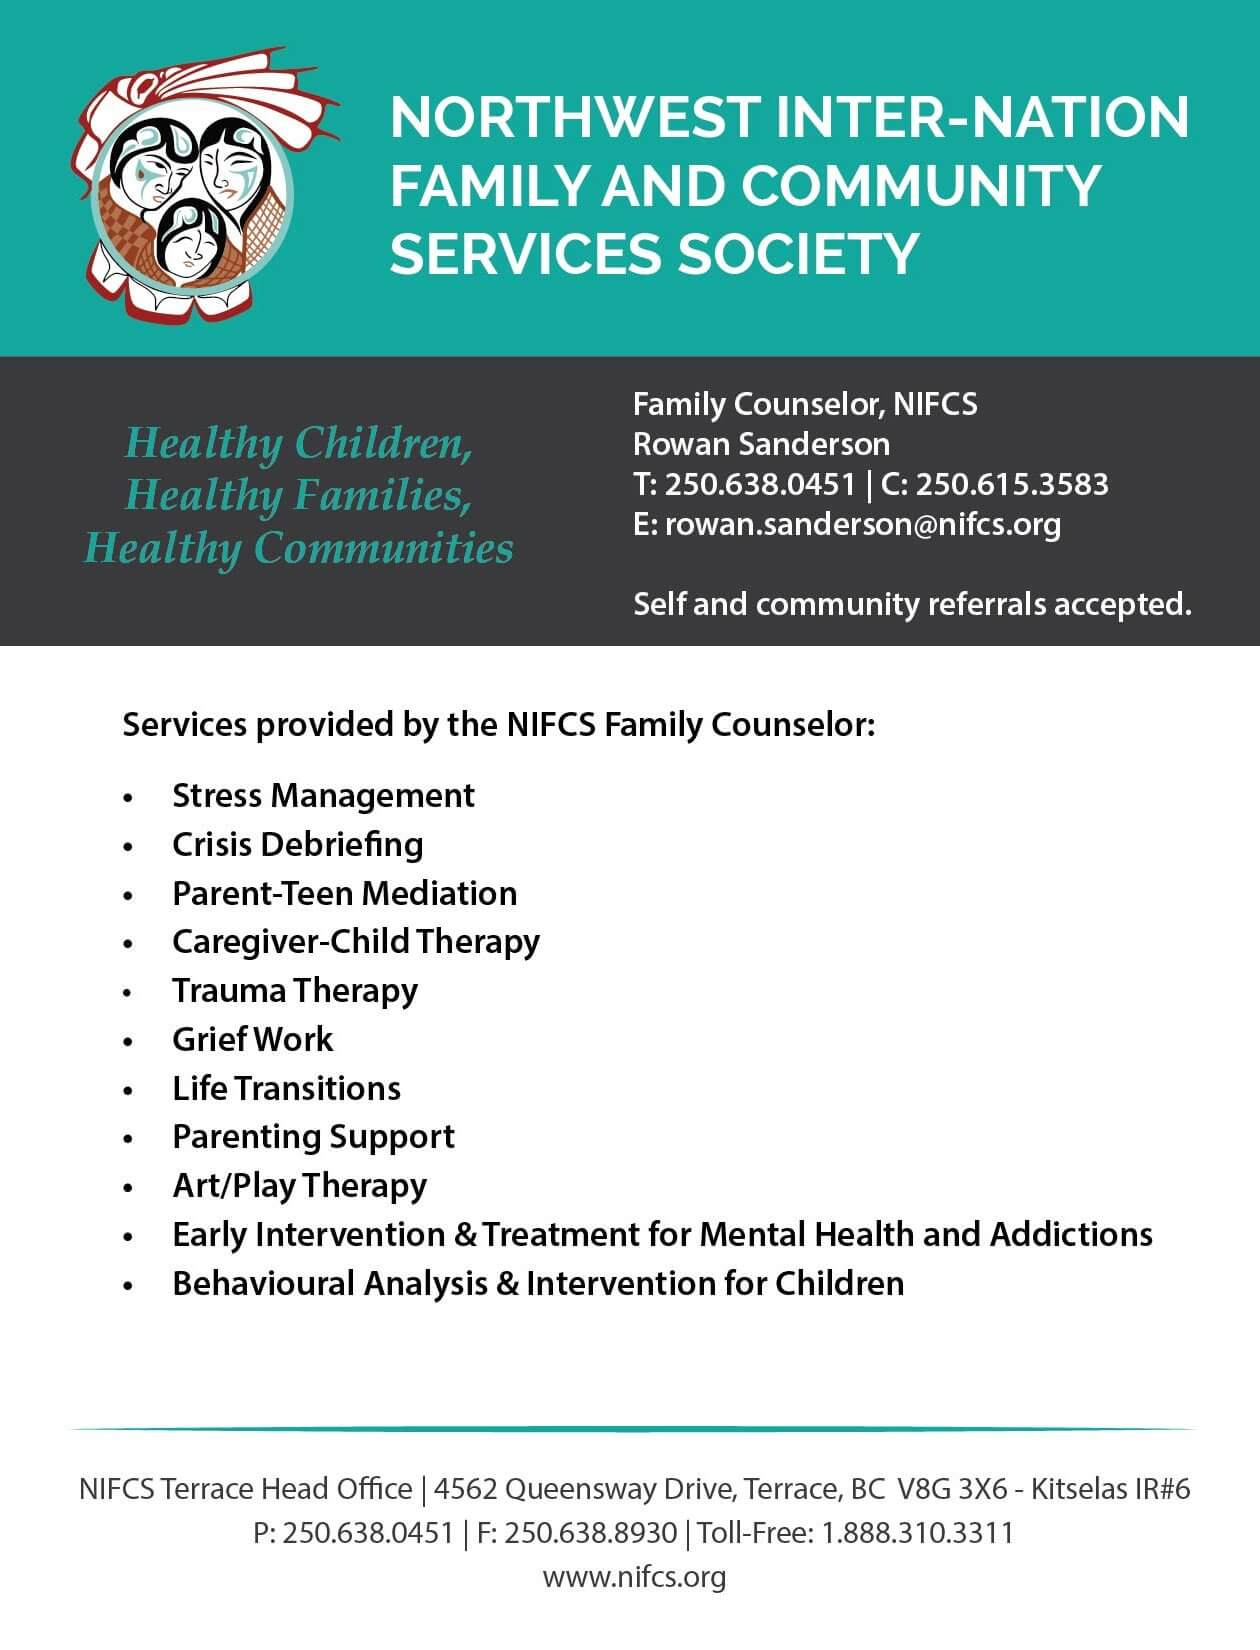 Services Provided by the NIFCS Family Counselor ...